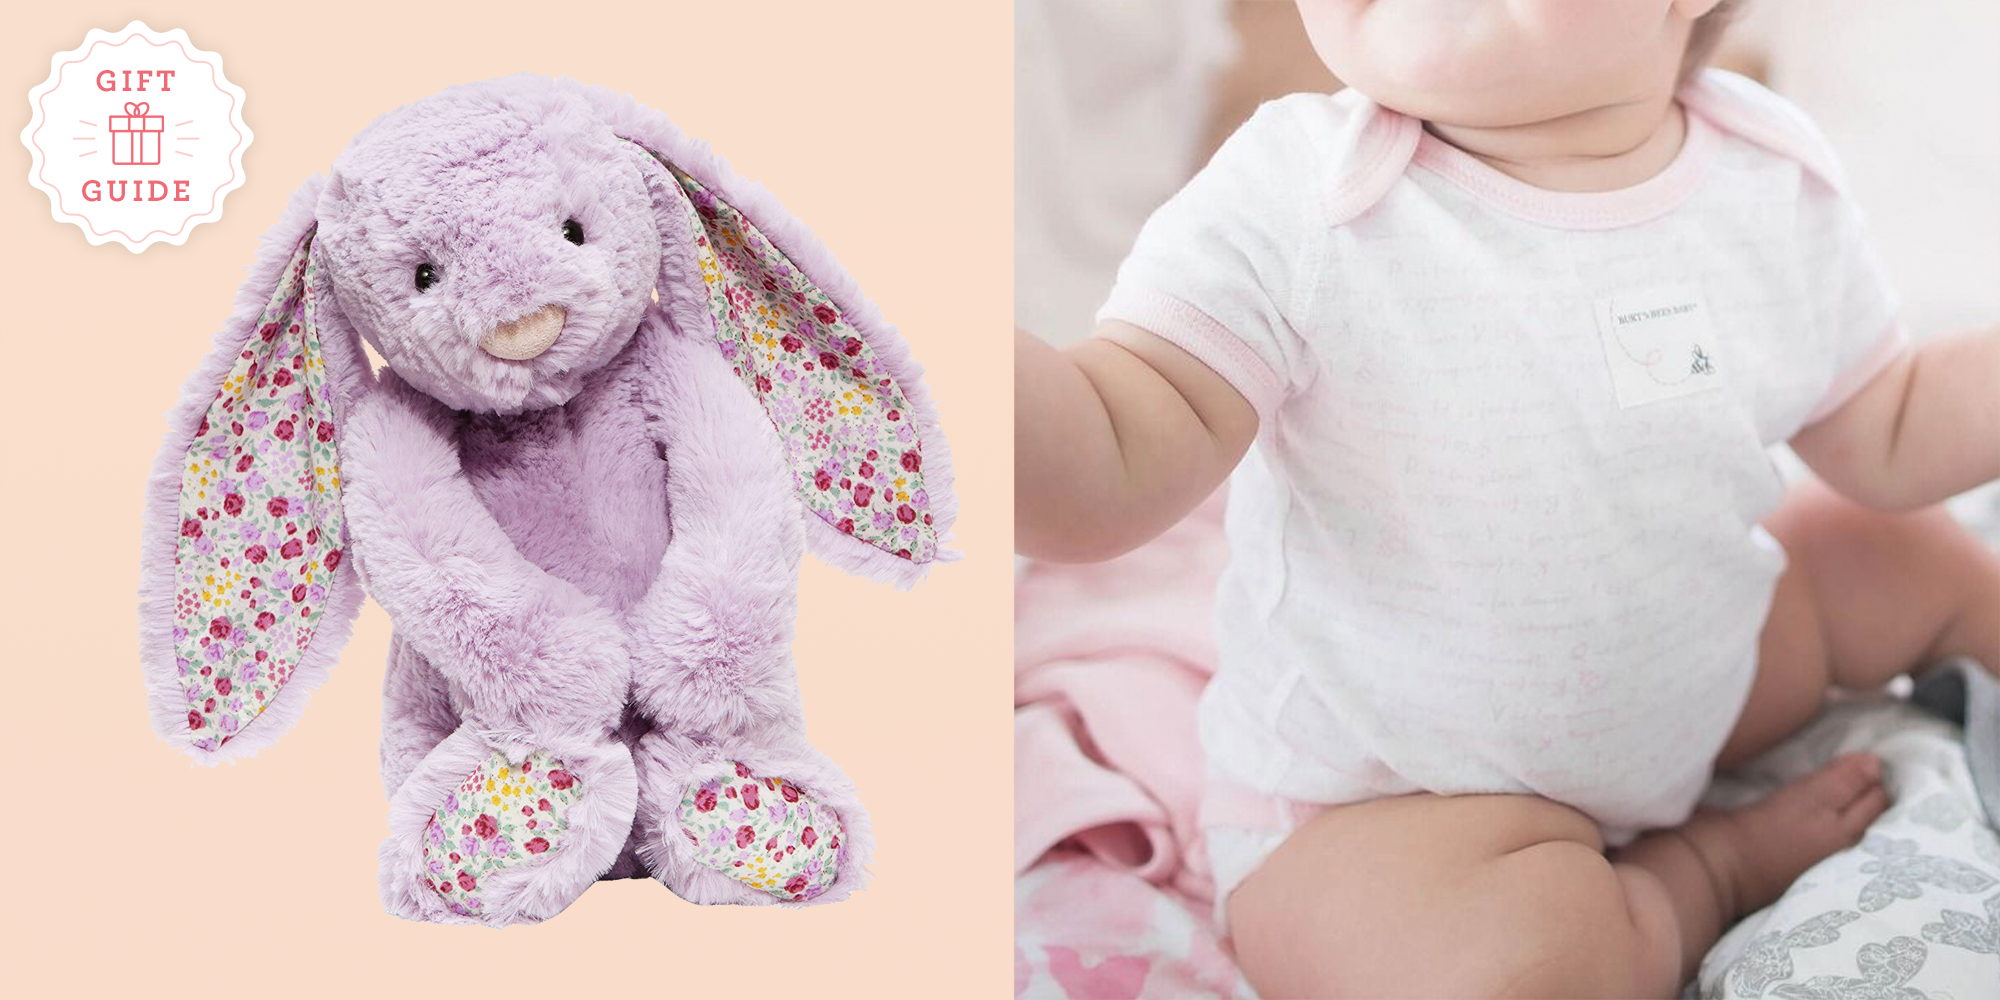 6 Best Baby Girl Gifts - Infant and Newborn Girl Gifts 6